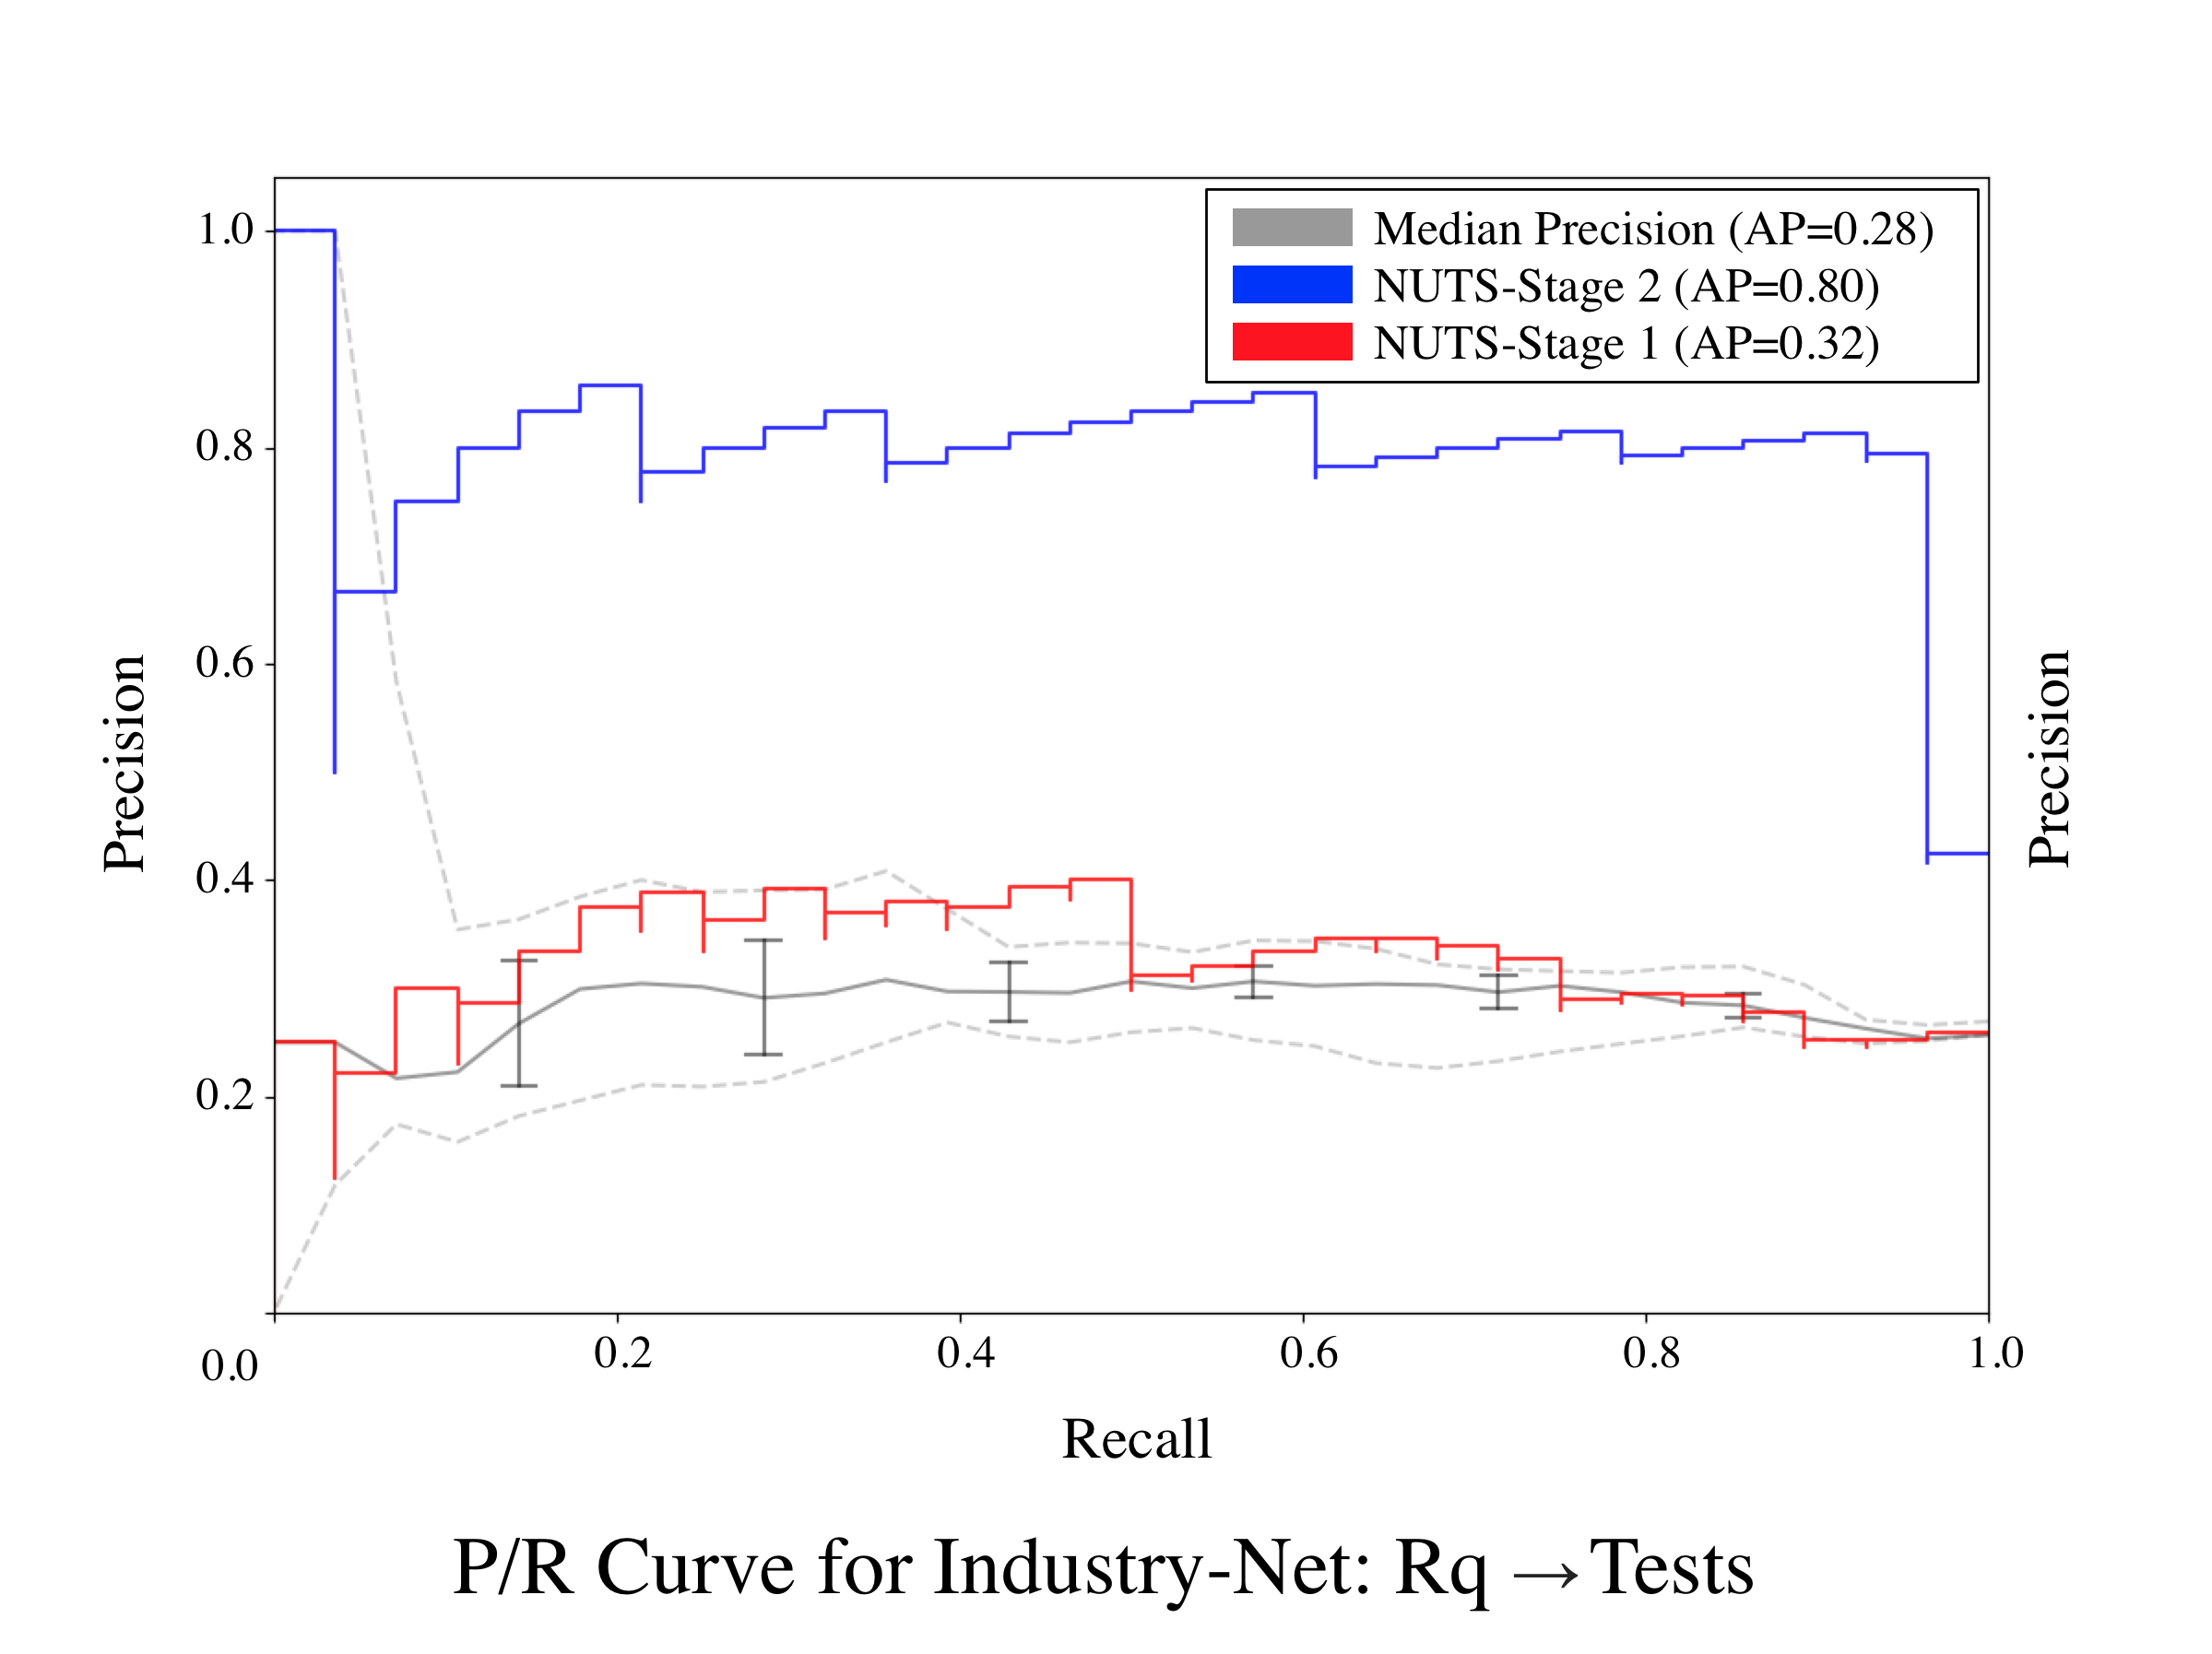 Industry-Net-Req-Tests-25.png